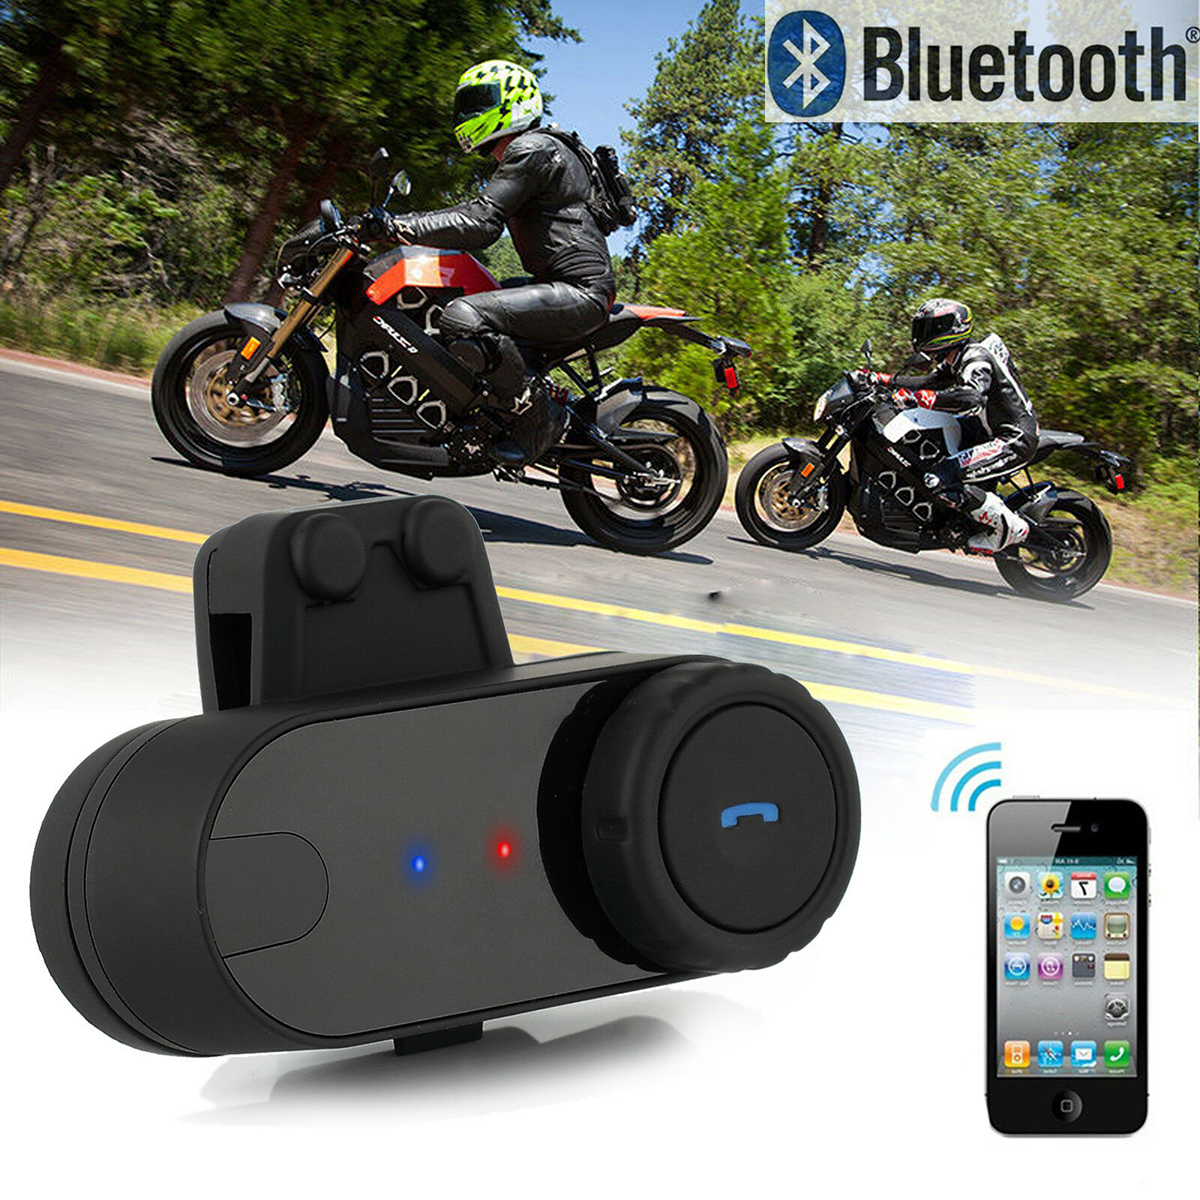 SOONHUA Wireless BT Interphone Walkie talkie 800M Motorcycle Walkie talkies Motorbike Bluetooth Helmet Intercom HeadsetSOONHUA Wireless BT Interphone Walkie talkie 800M Motorcycle Walkie talkies Motorbike Bluetooth Helmet Intercom Headset